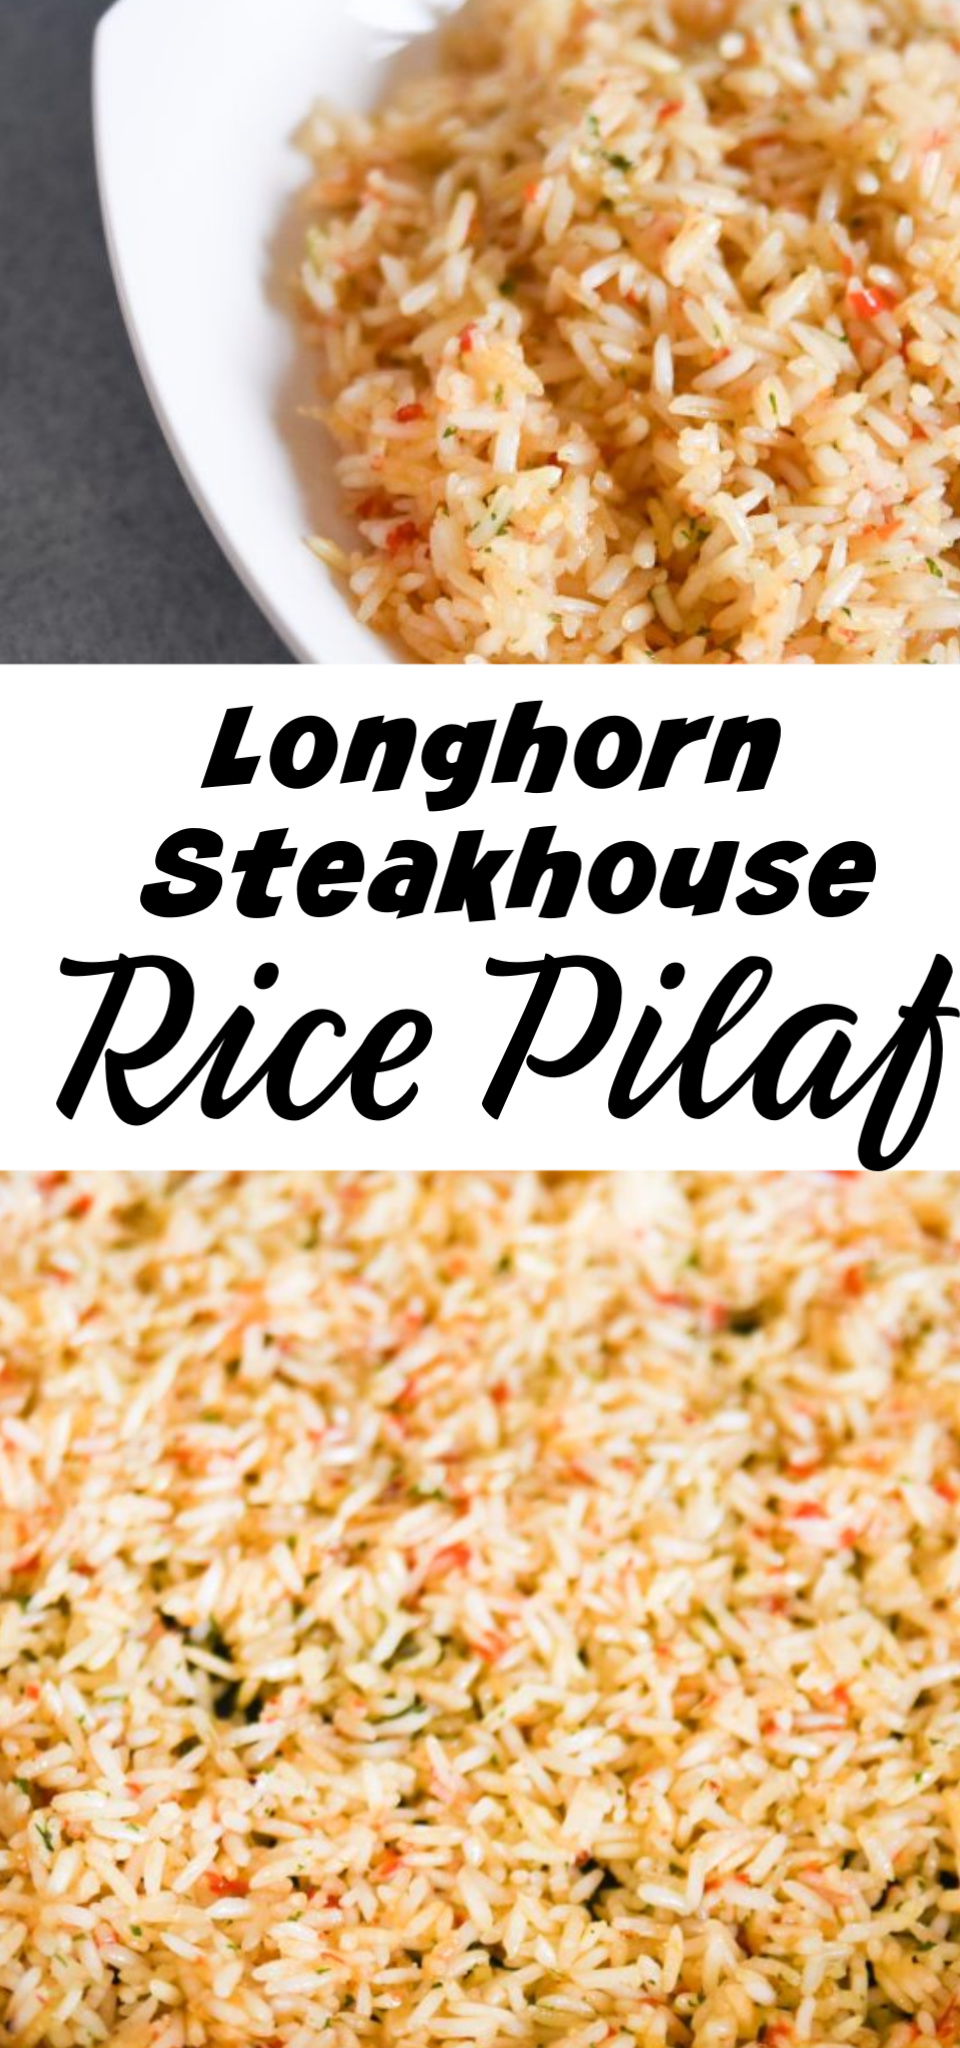 If you have wanted to make Longhorn Steakhouse Rice Pilaf in the comfort of your own home then you are in luck. This rice pilaf recipe is incredibly easy and delicious! And it takes less than 20 minutes to prepare! via @simplysidedishes89